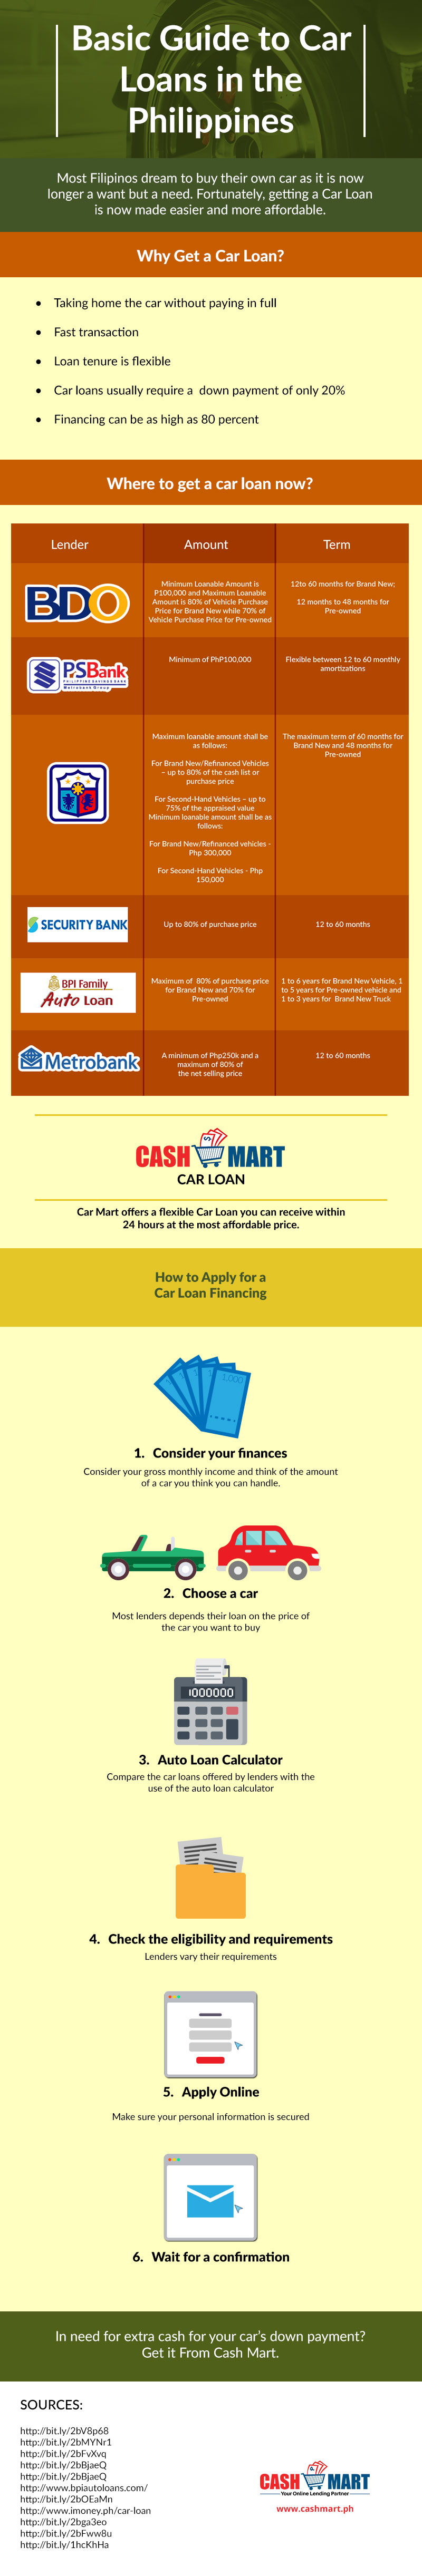 basic-guide-to-car-loans-in-the-philippines